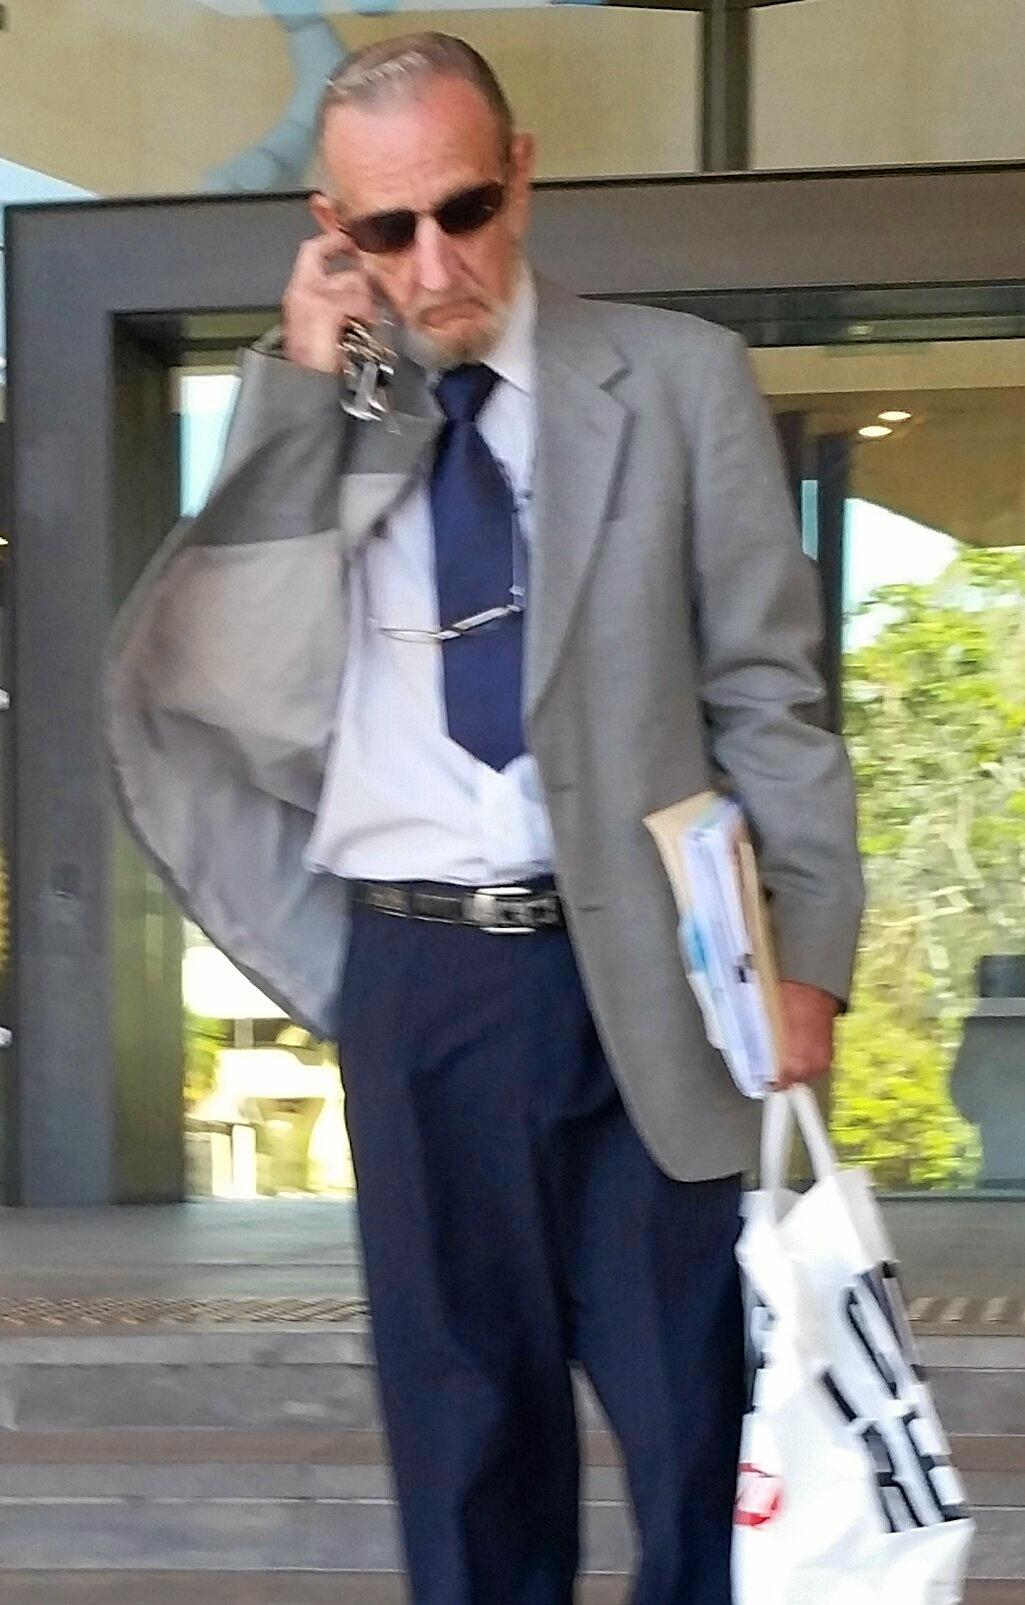 ASSAULT: Pensioner Donald Easton was convicted of assaulting his neighbours.